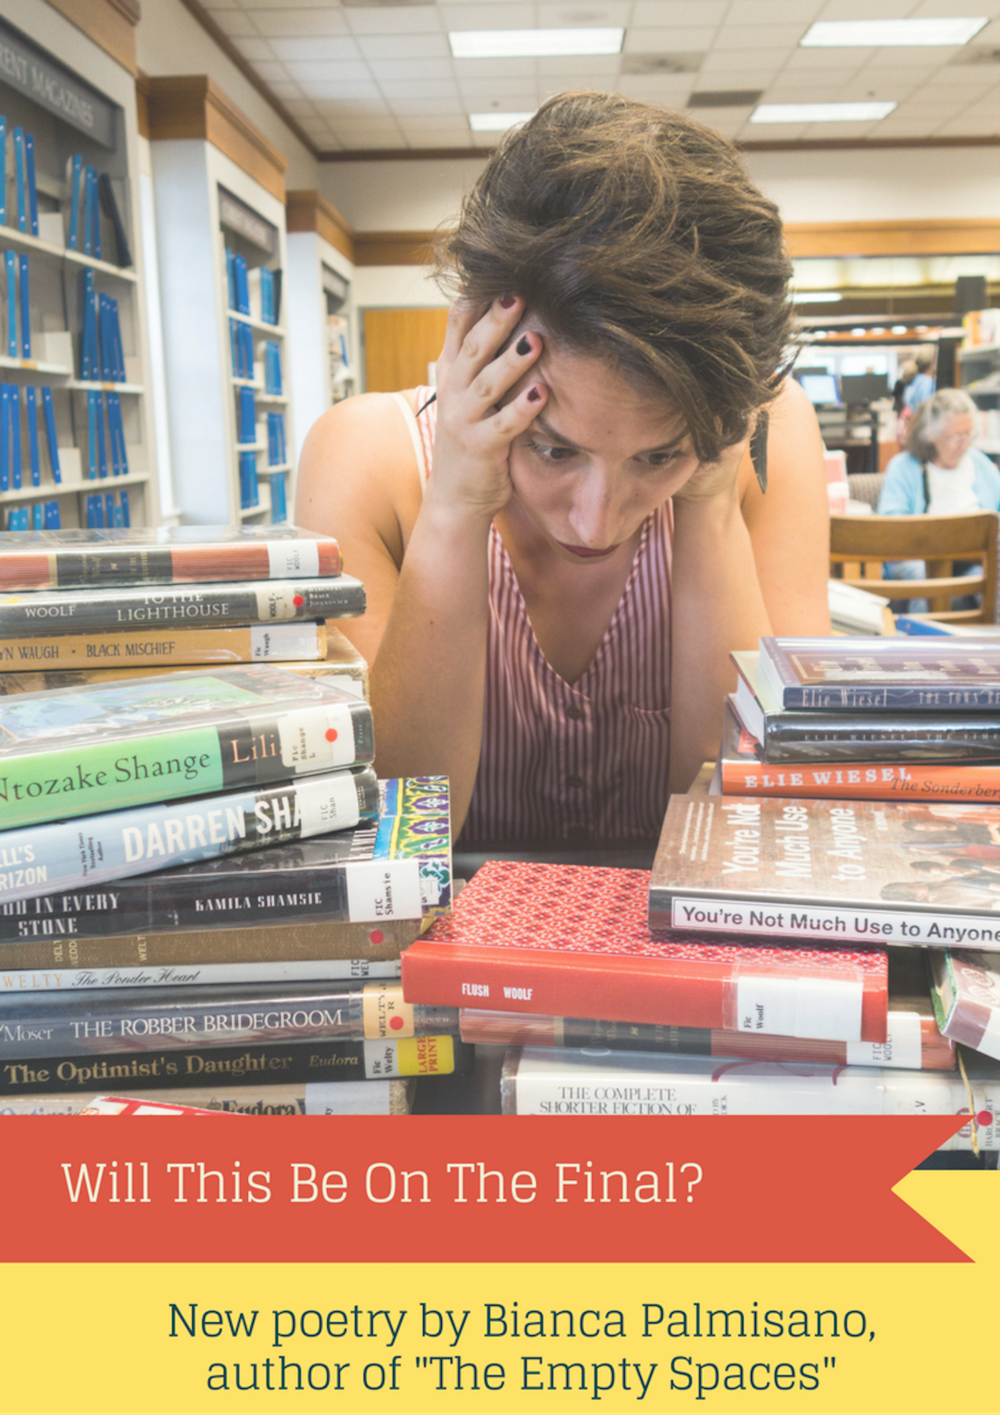 Will this be on the final? 978-1-941771-15-0 GOODREADS - GOOGLE BOOKS $4.99 DOWNLOAD AVAILABLE AS AN EBOOK FROM: AOIS21 MARKET -  KOBOBOOKS -  GOOGLE PLAY -  SMASHWORDS    BARNES & NOBLE -  AMAZON -  IBOOKSTORE - Ganxy